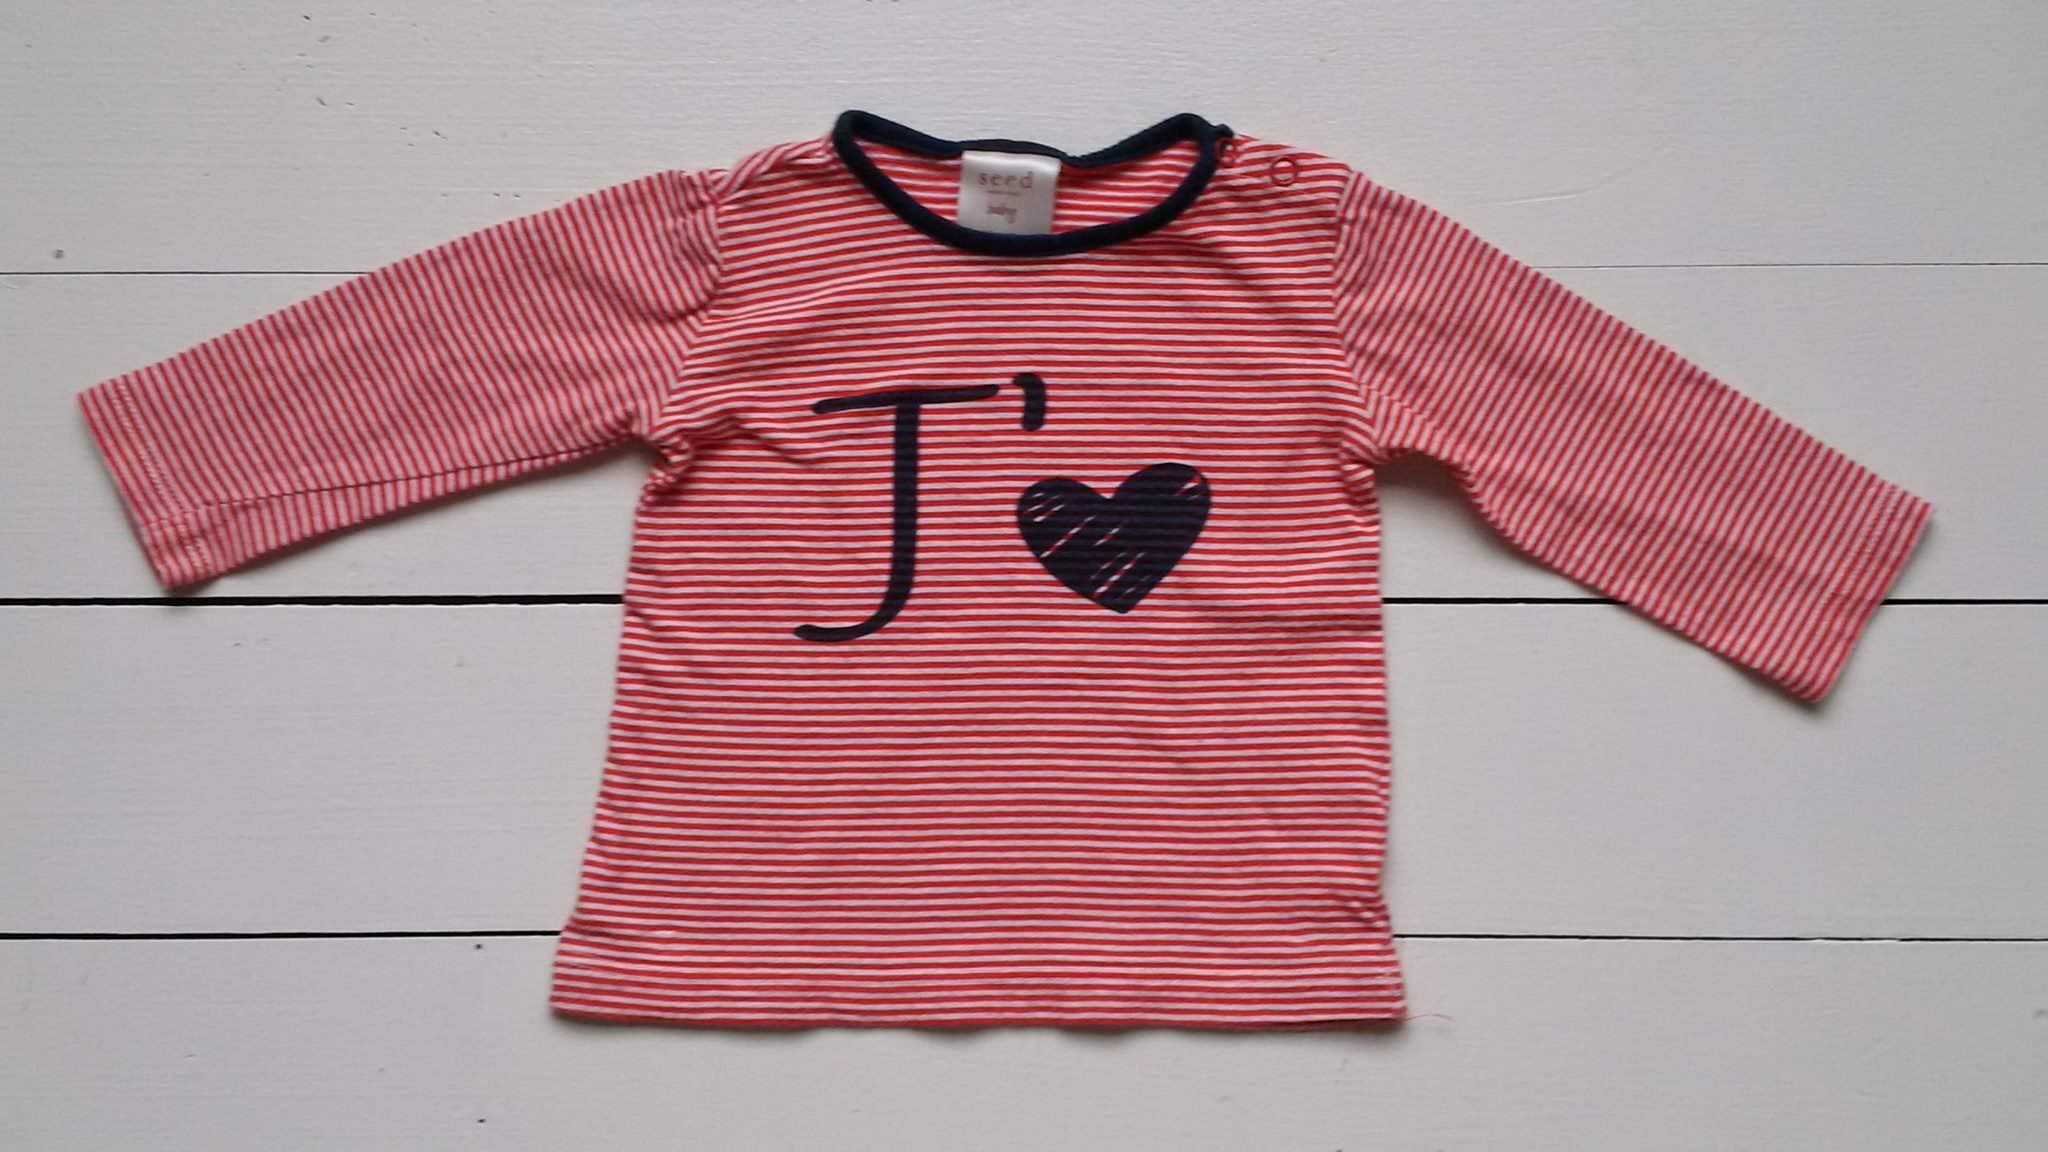 SEED Shirt - 0-3m $5 RESERVE!!!